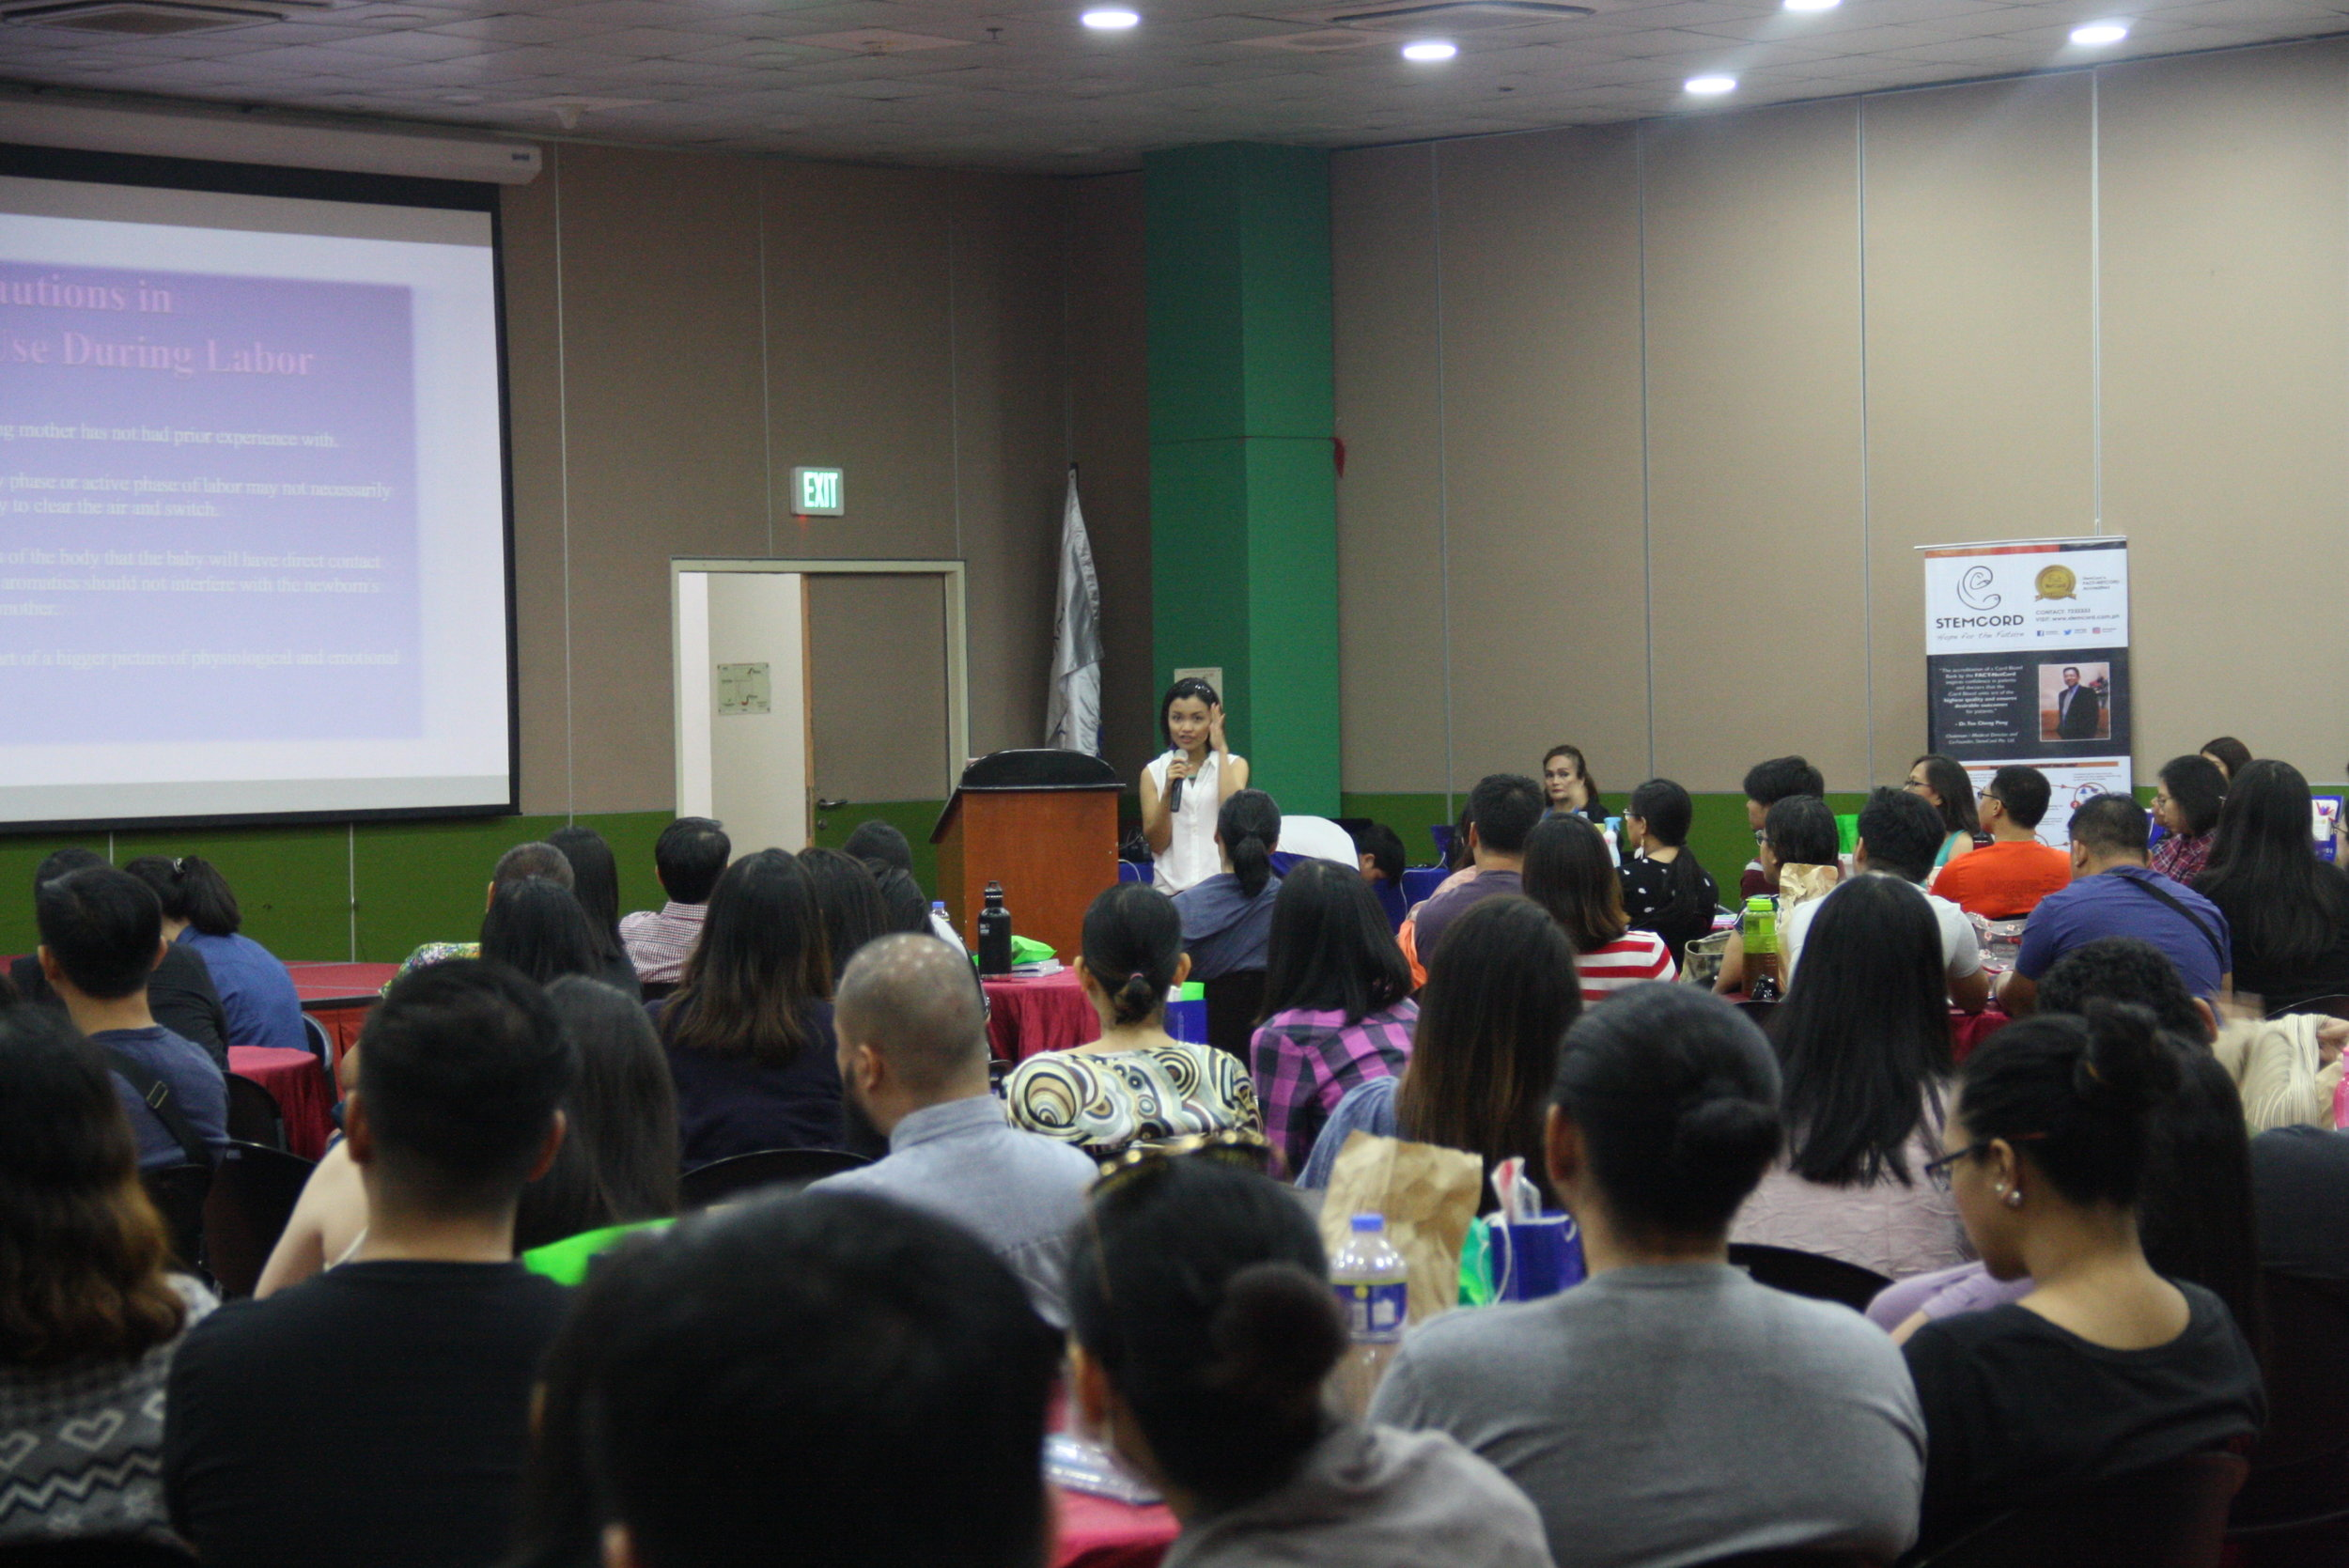 Noelle Pollack, Certified Breastfeeding Counselor and Fertility, Birth, and Postpartum Doula, discussing the benefits of water birthing in Makati Medical Center